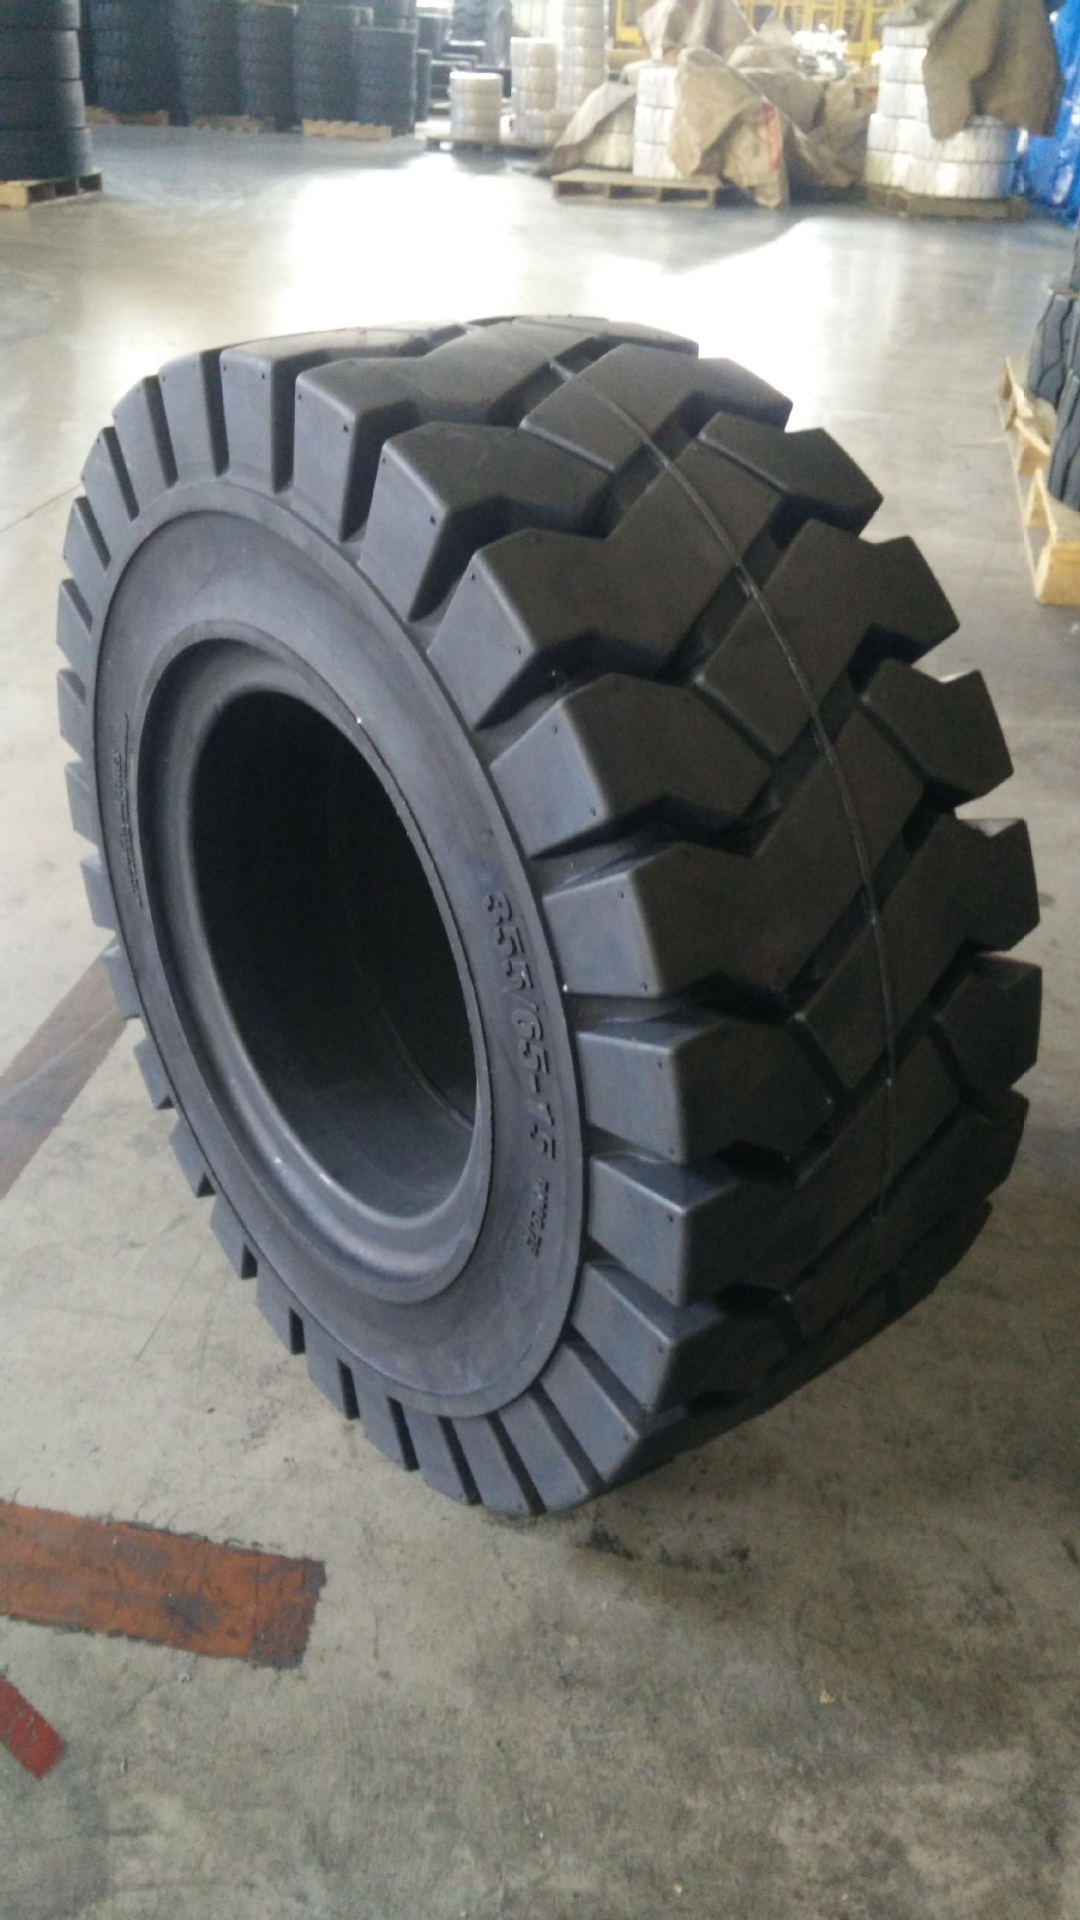 355/65-15 tubeless tire for sale